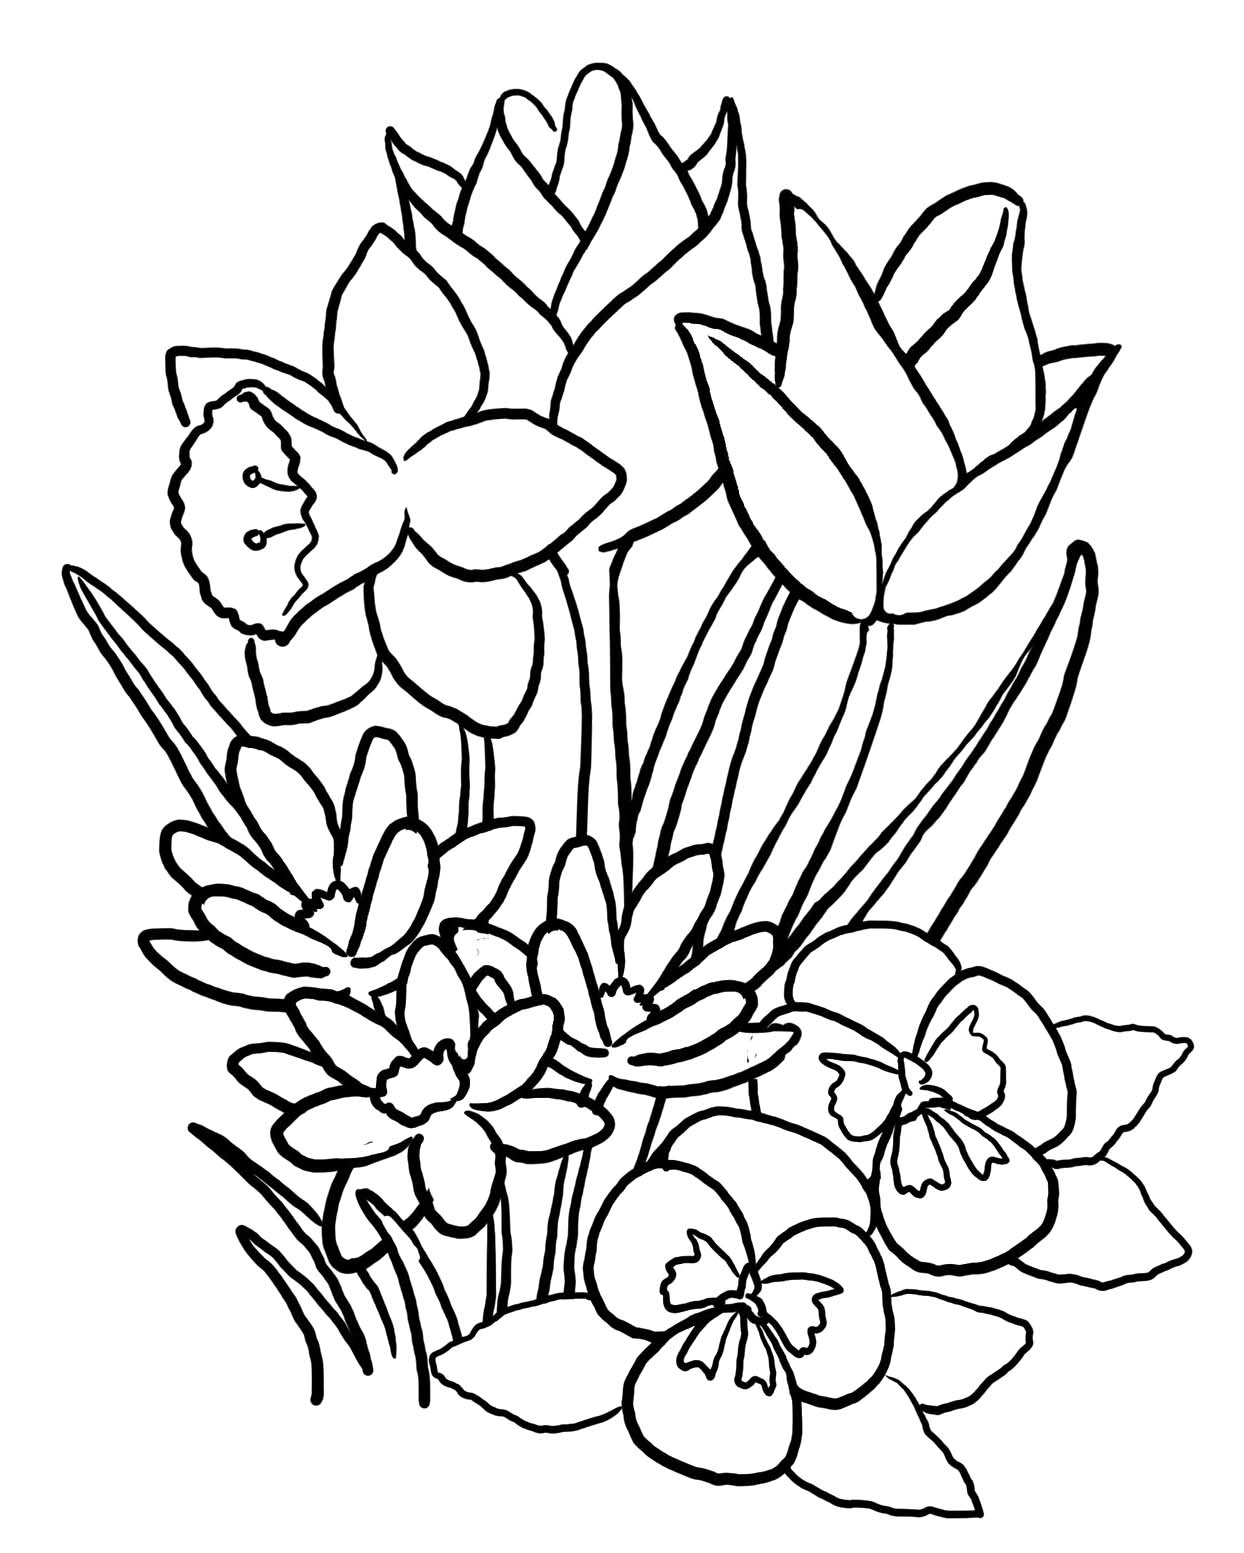 free printable flowers to color free printable flower coloring pages for kids best flowers to free printable color